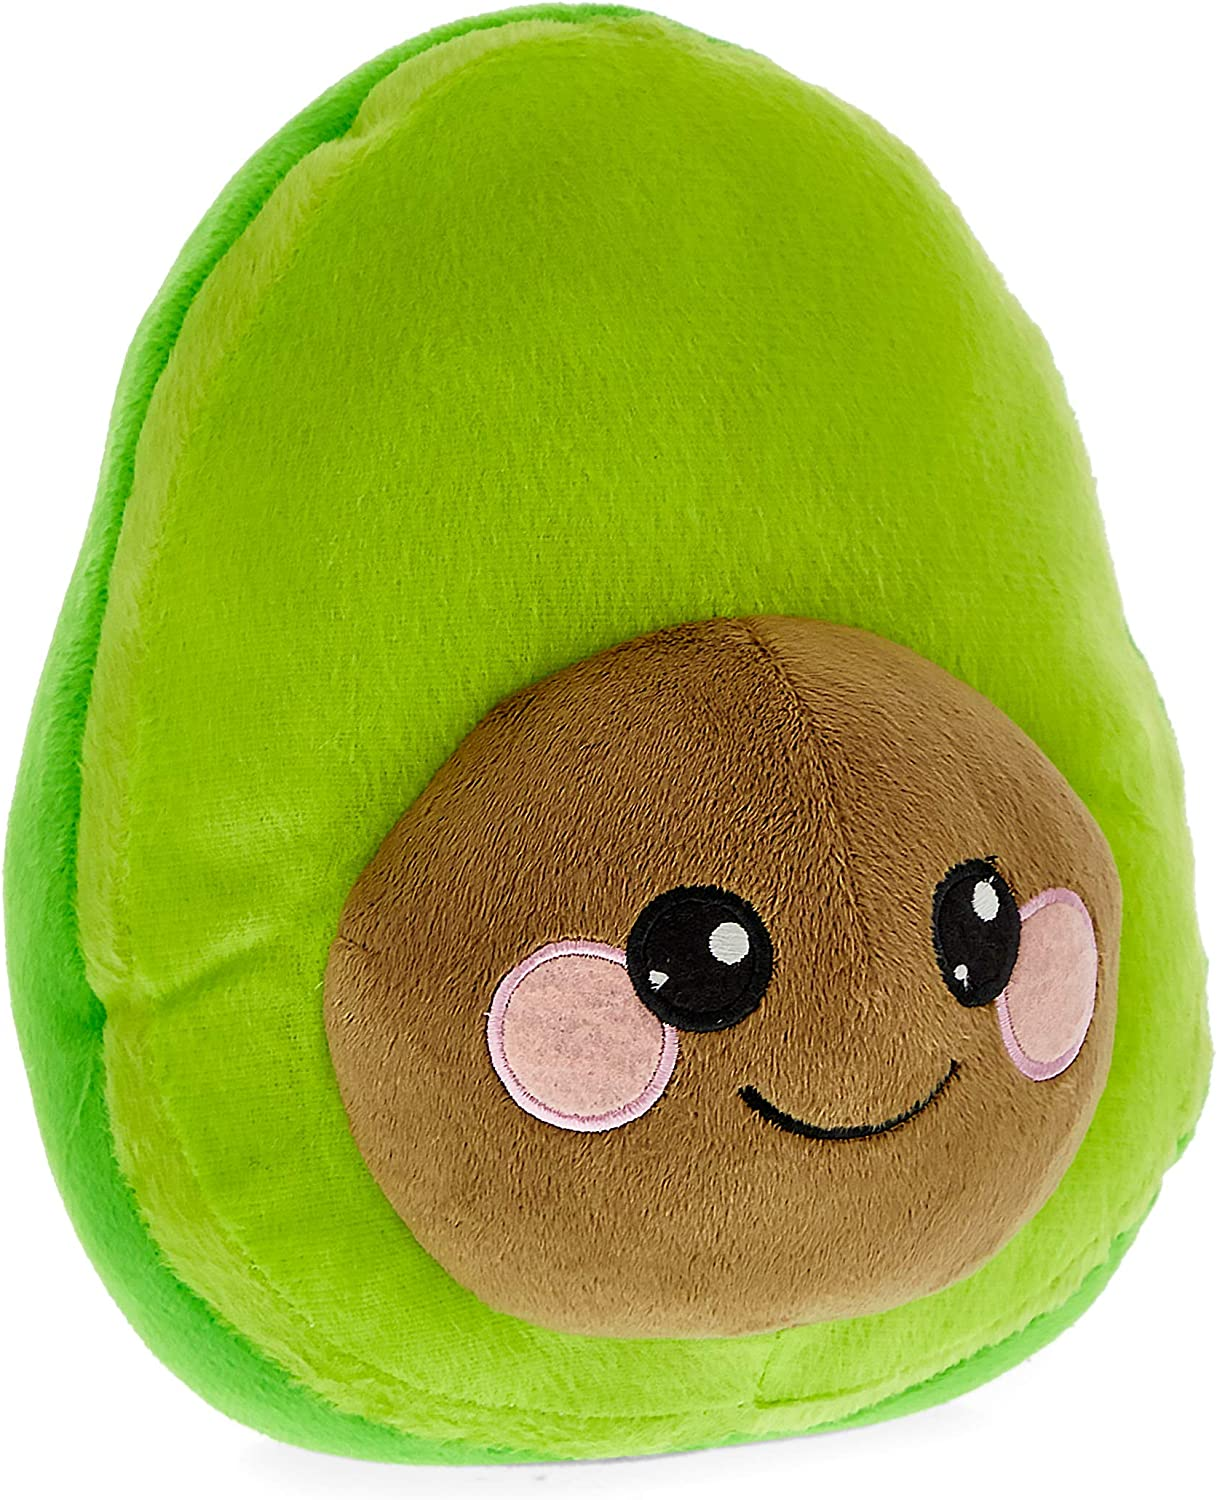 10 Inches Cute Avocado Plush